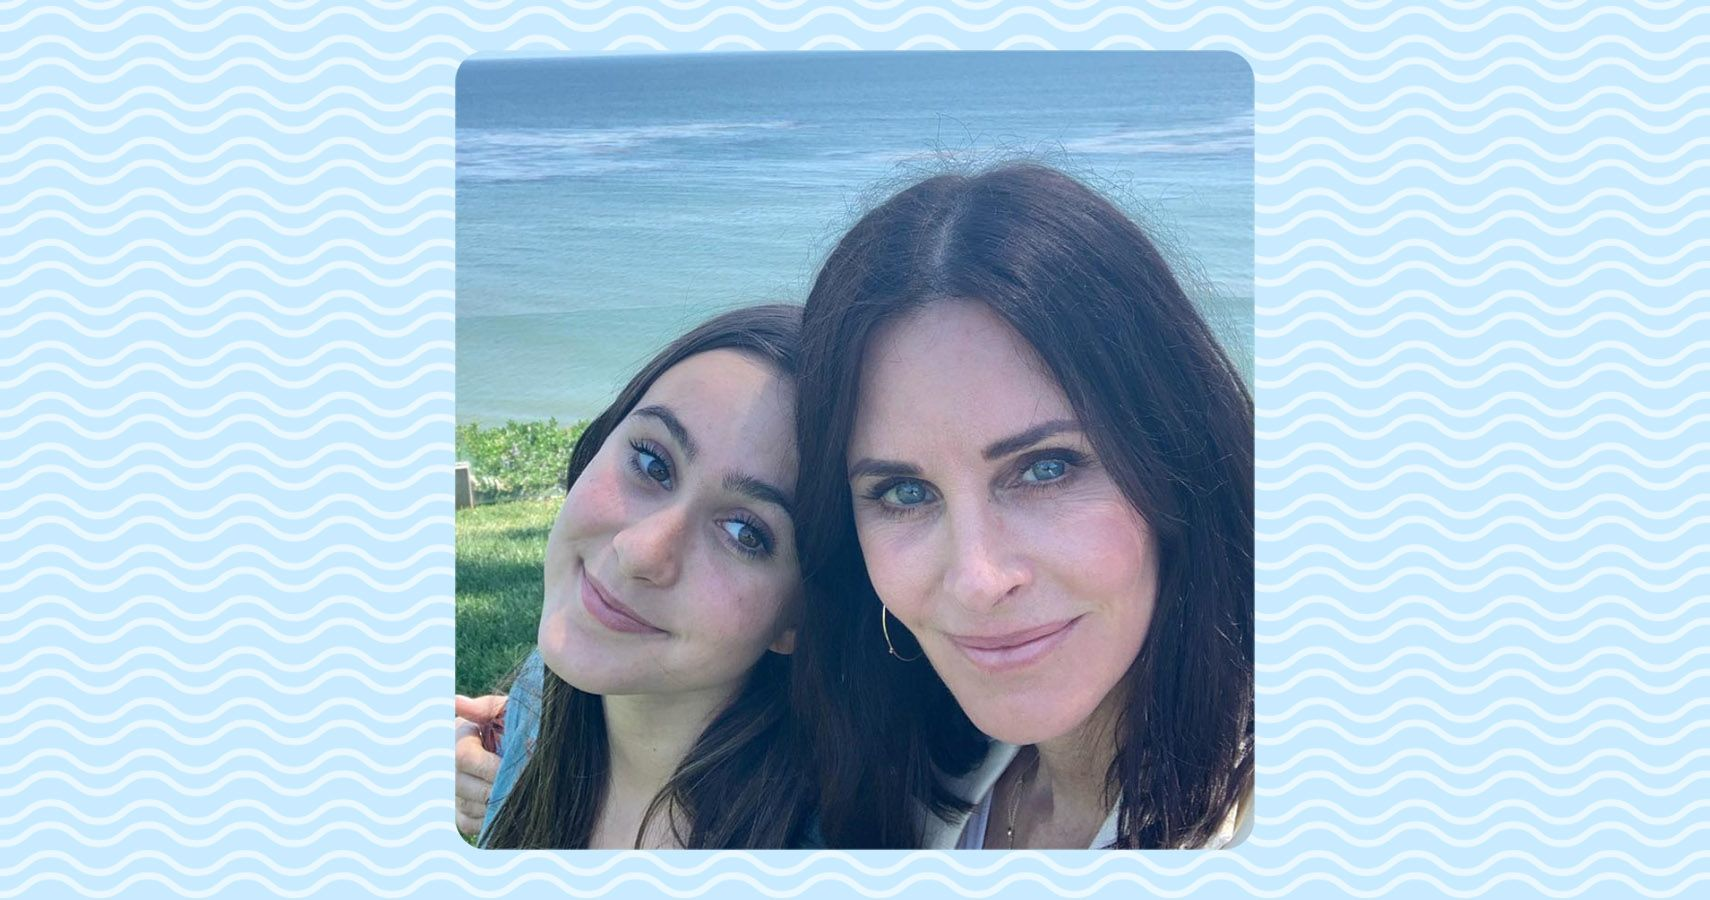 7 Things You Likely Didn't Know About Courteney Cox's Kid